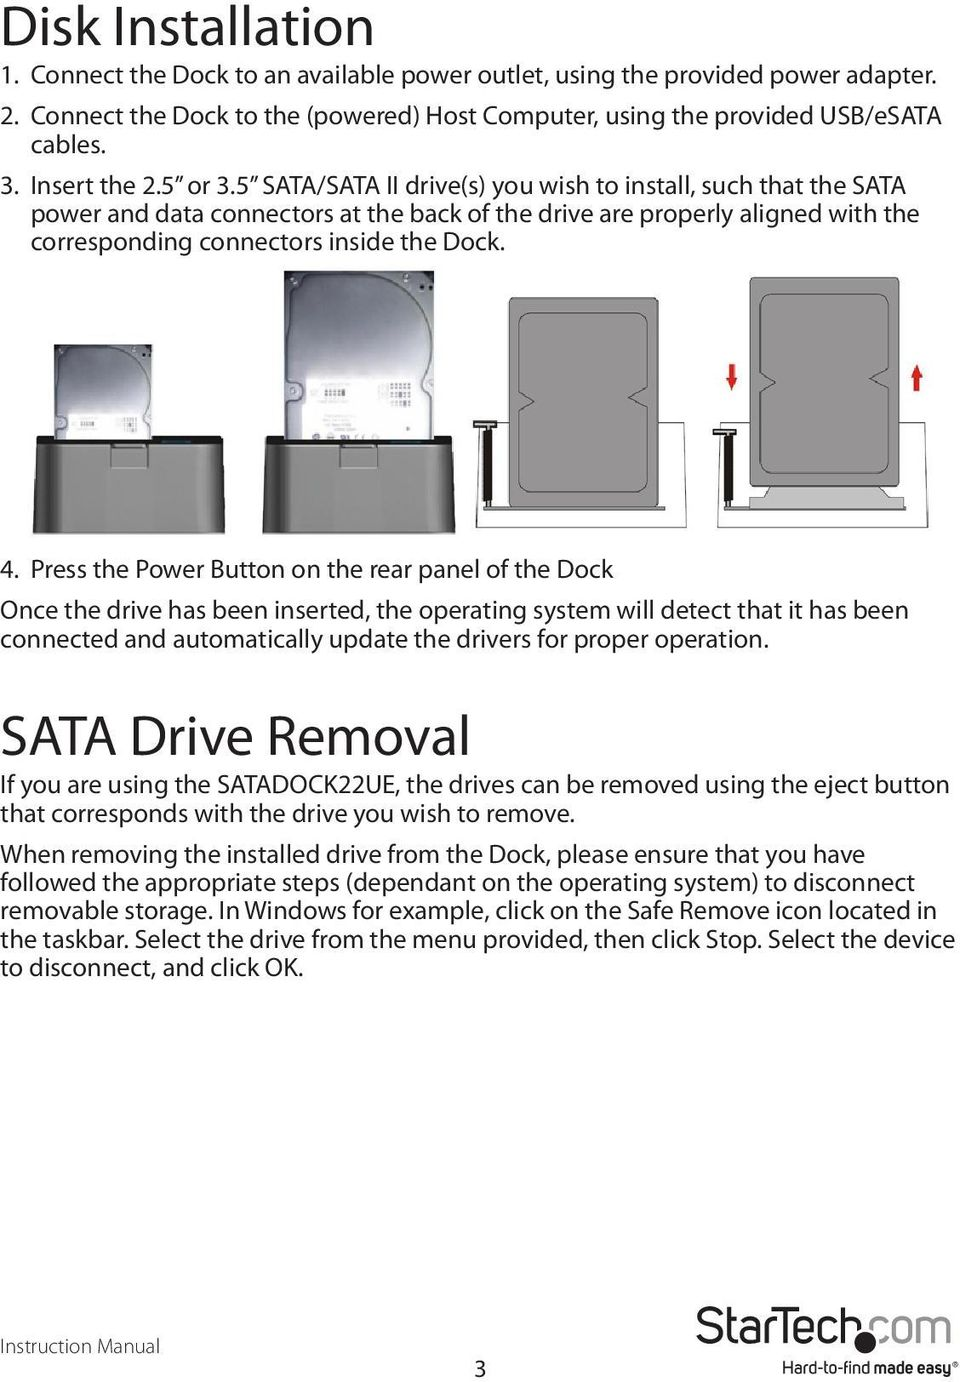 5 SATA/SATA II drive(s) you wish to install, such that the SATA power and data connectors at the back of the drive are properly aligned with the corresponding connectors inside the Dock. 4.